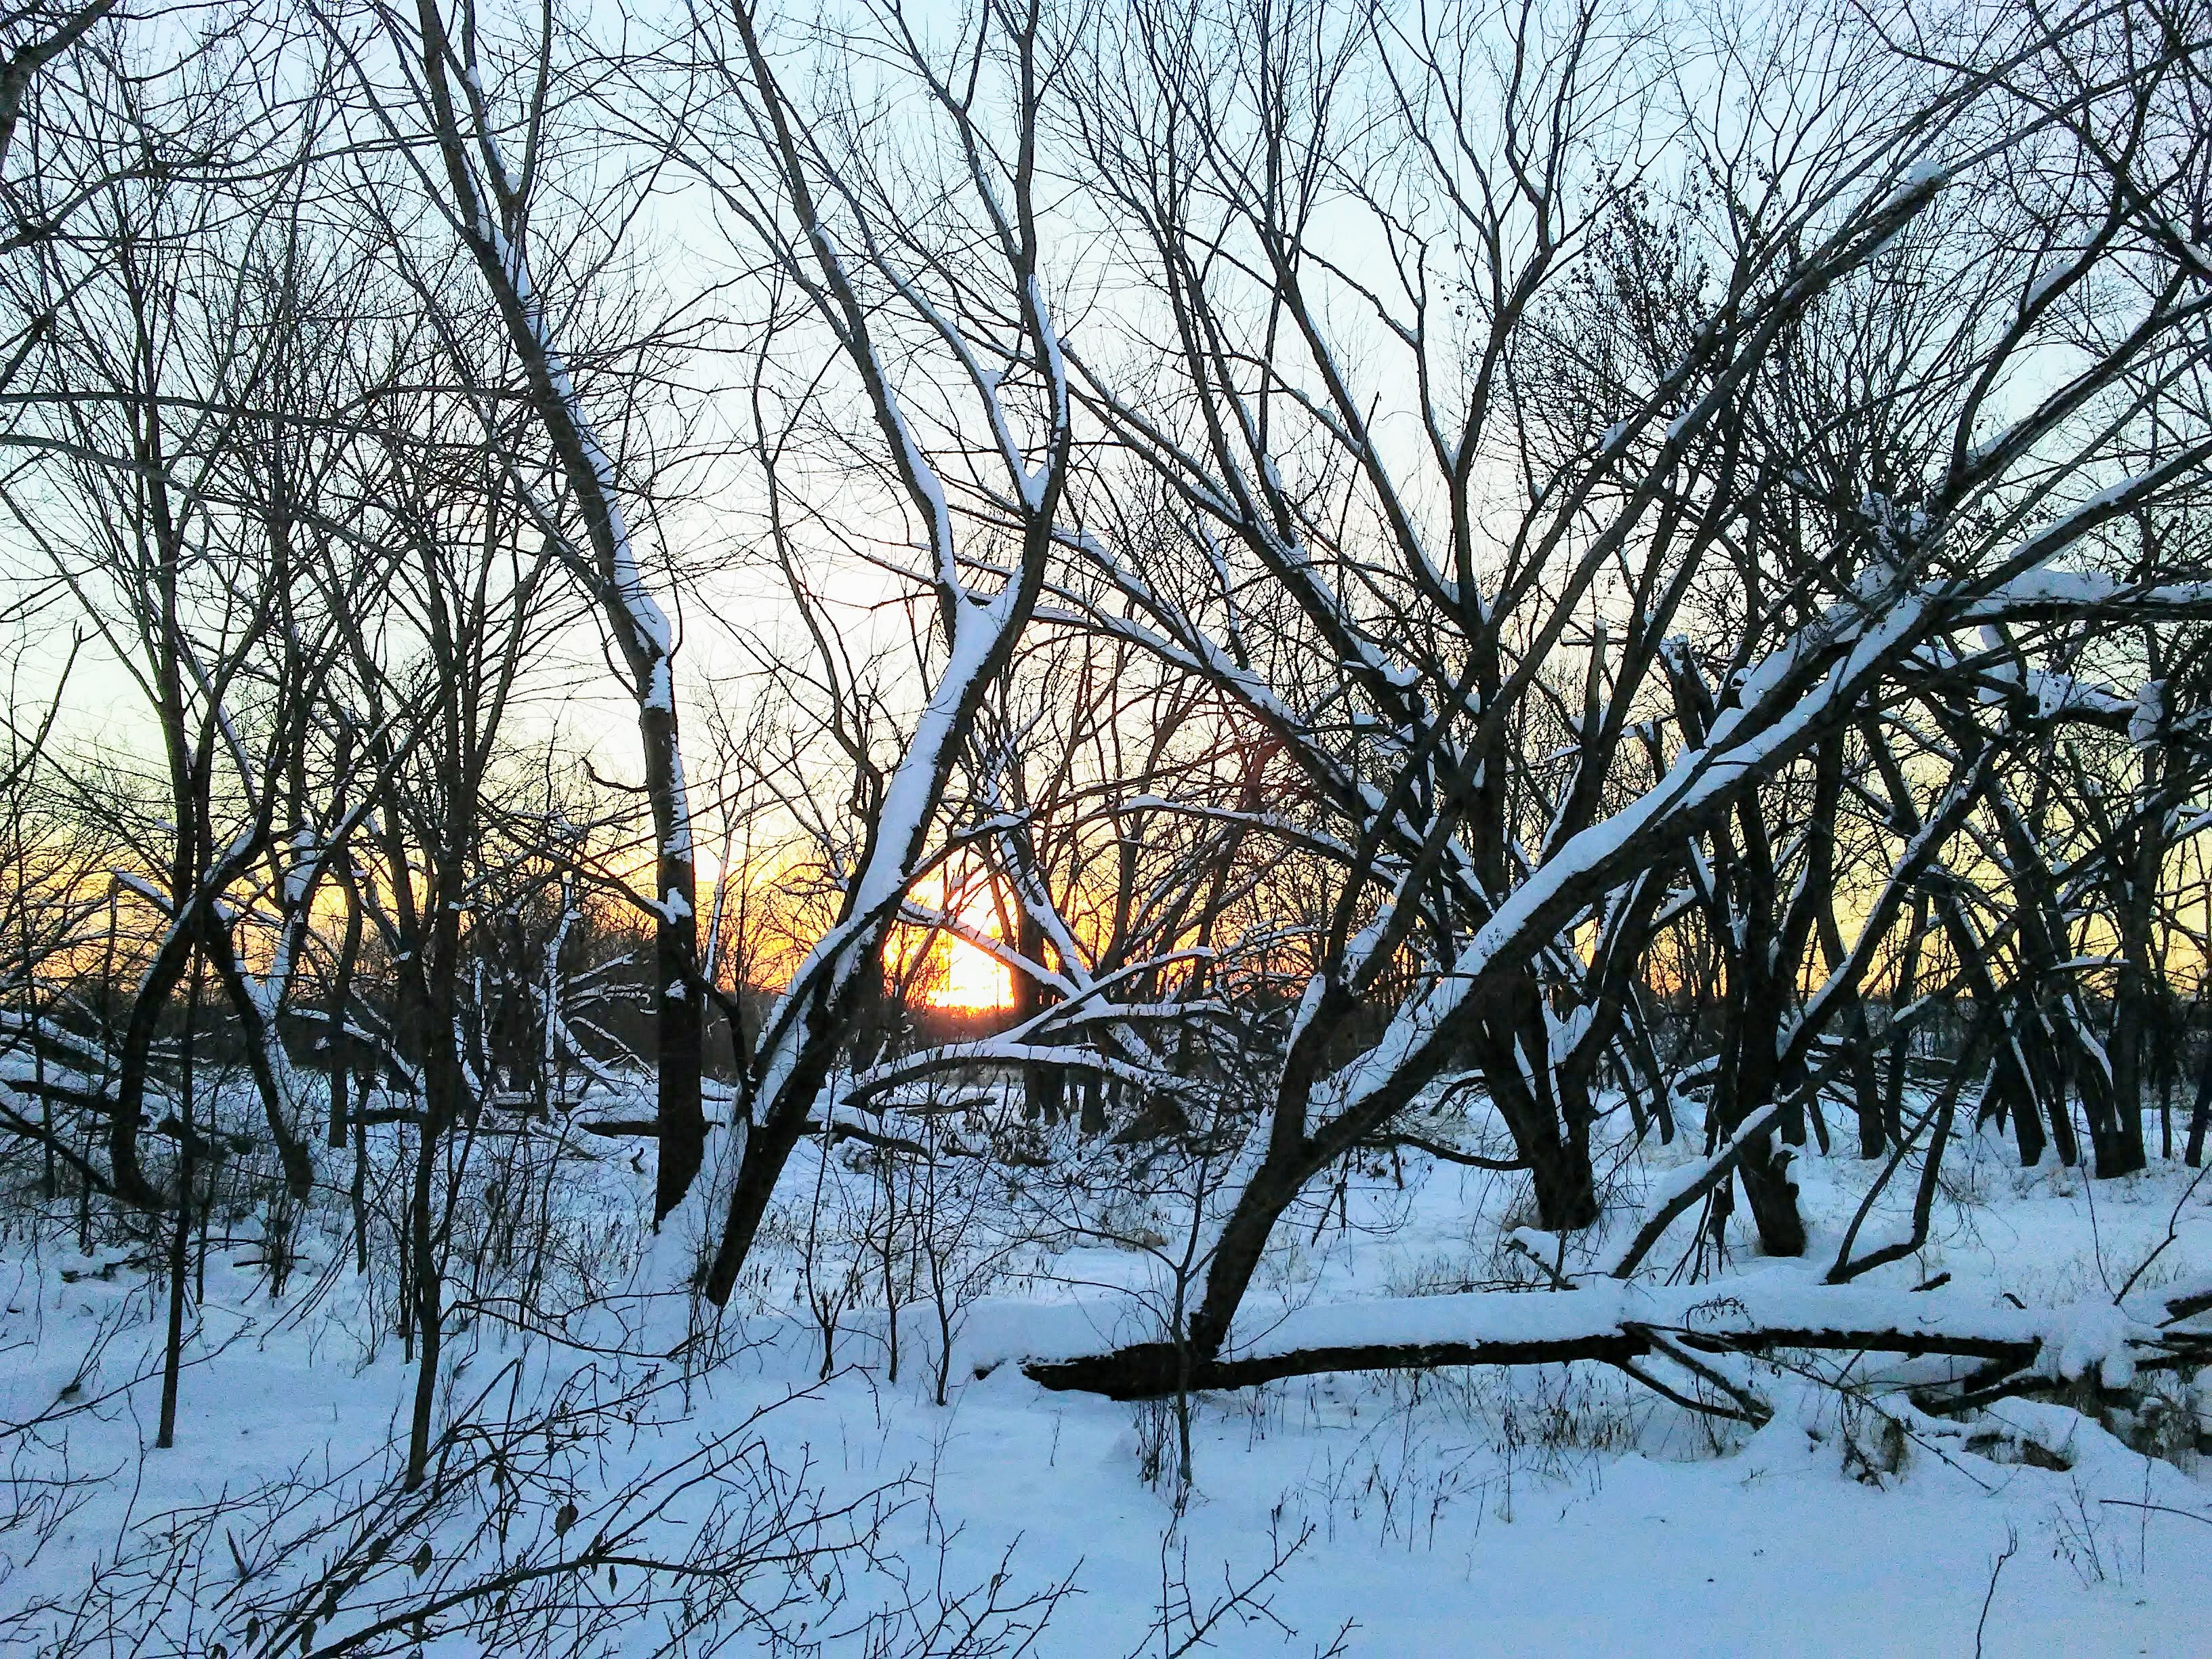 sunset, snow, trees